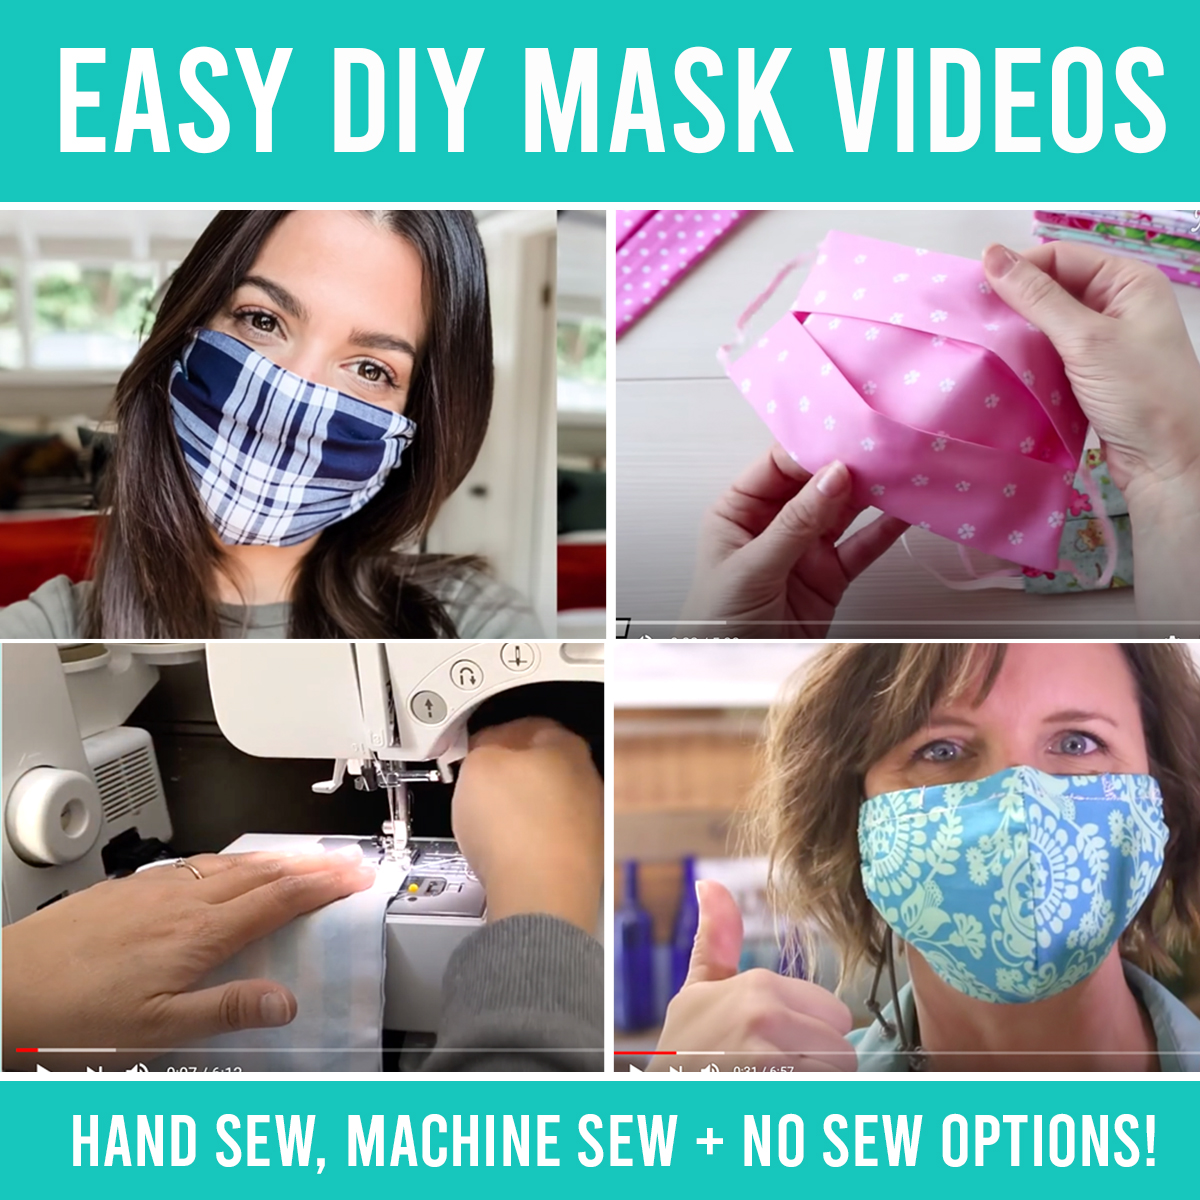 The best EASY homemade face mask VIDEOS {including no sewing options}